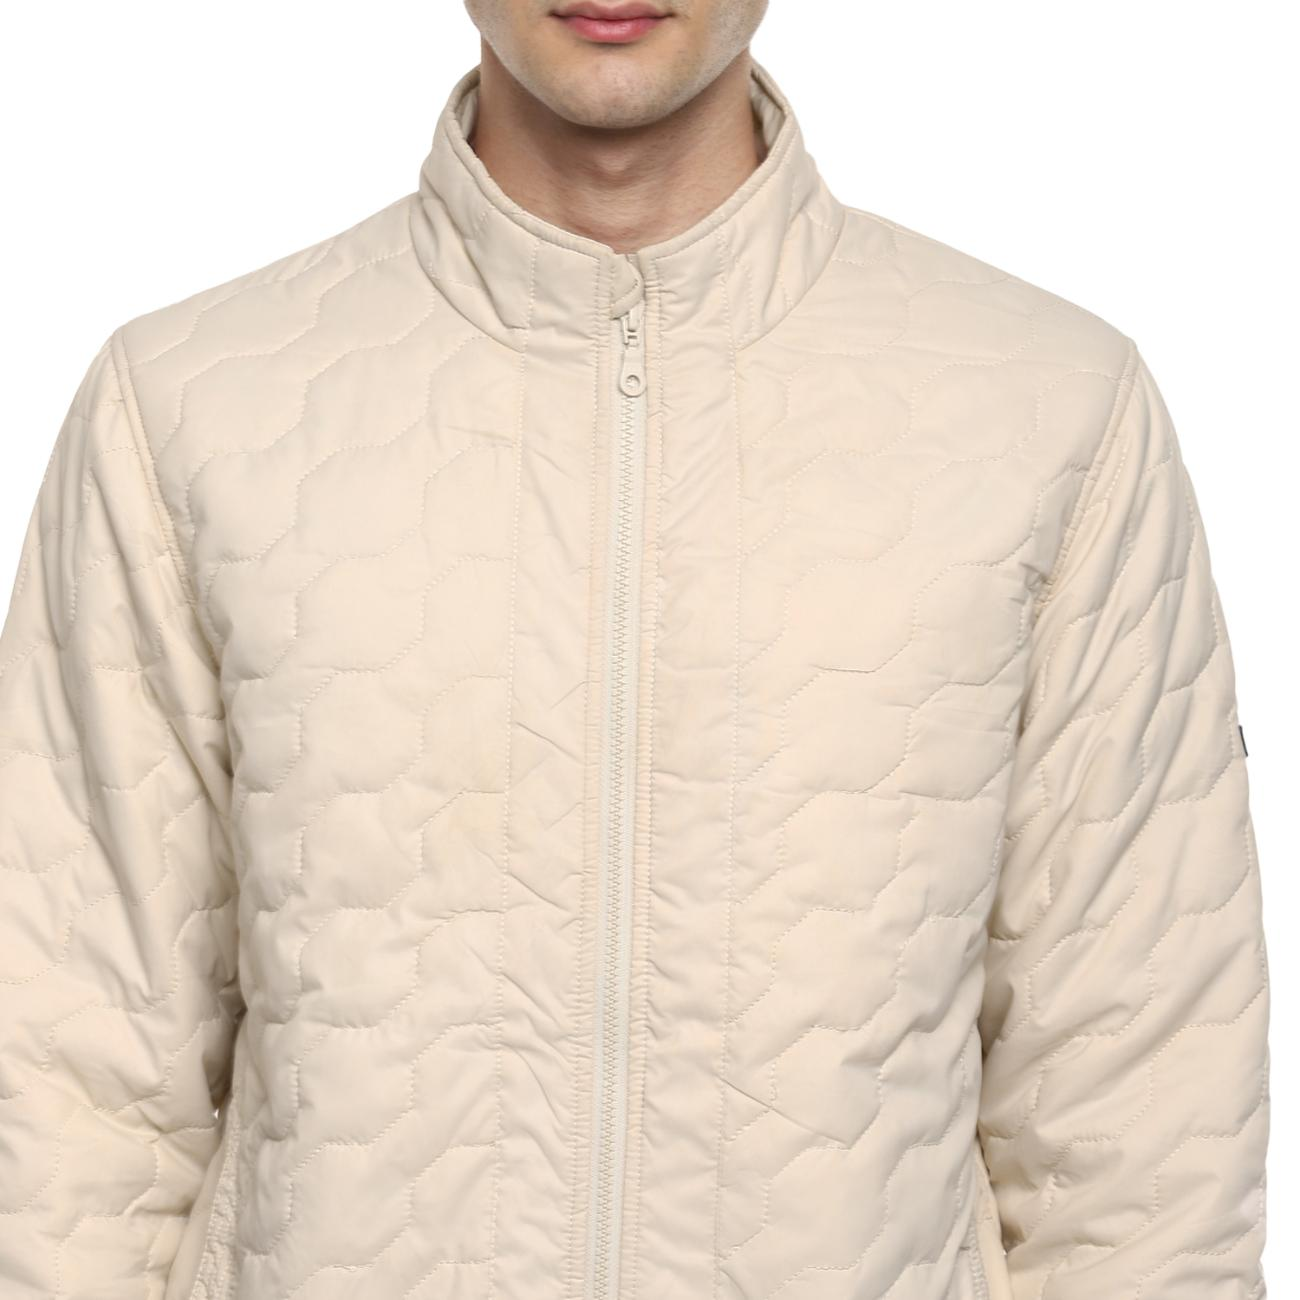 Shop Cream Jacket at Red Chief